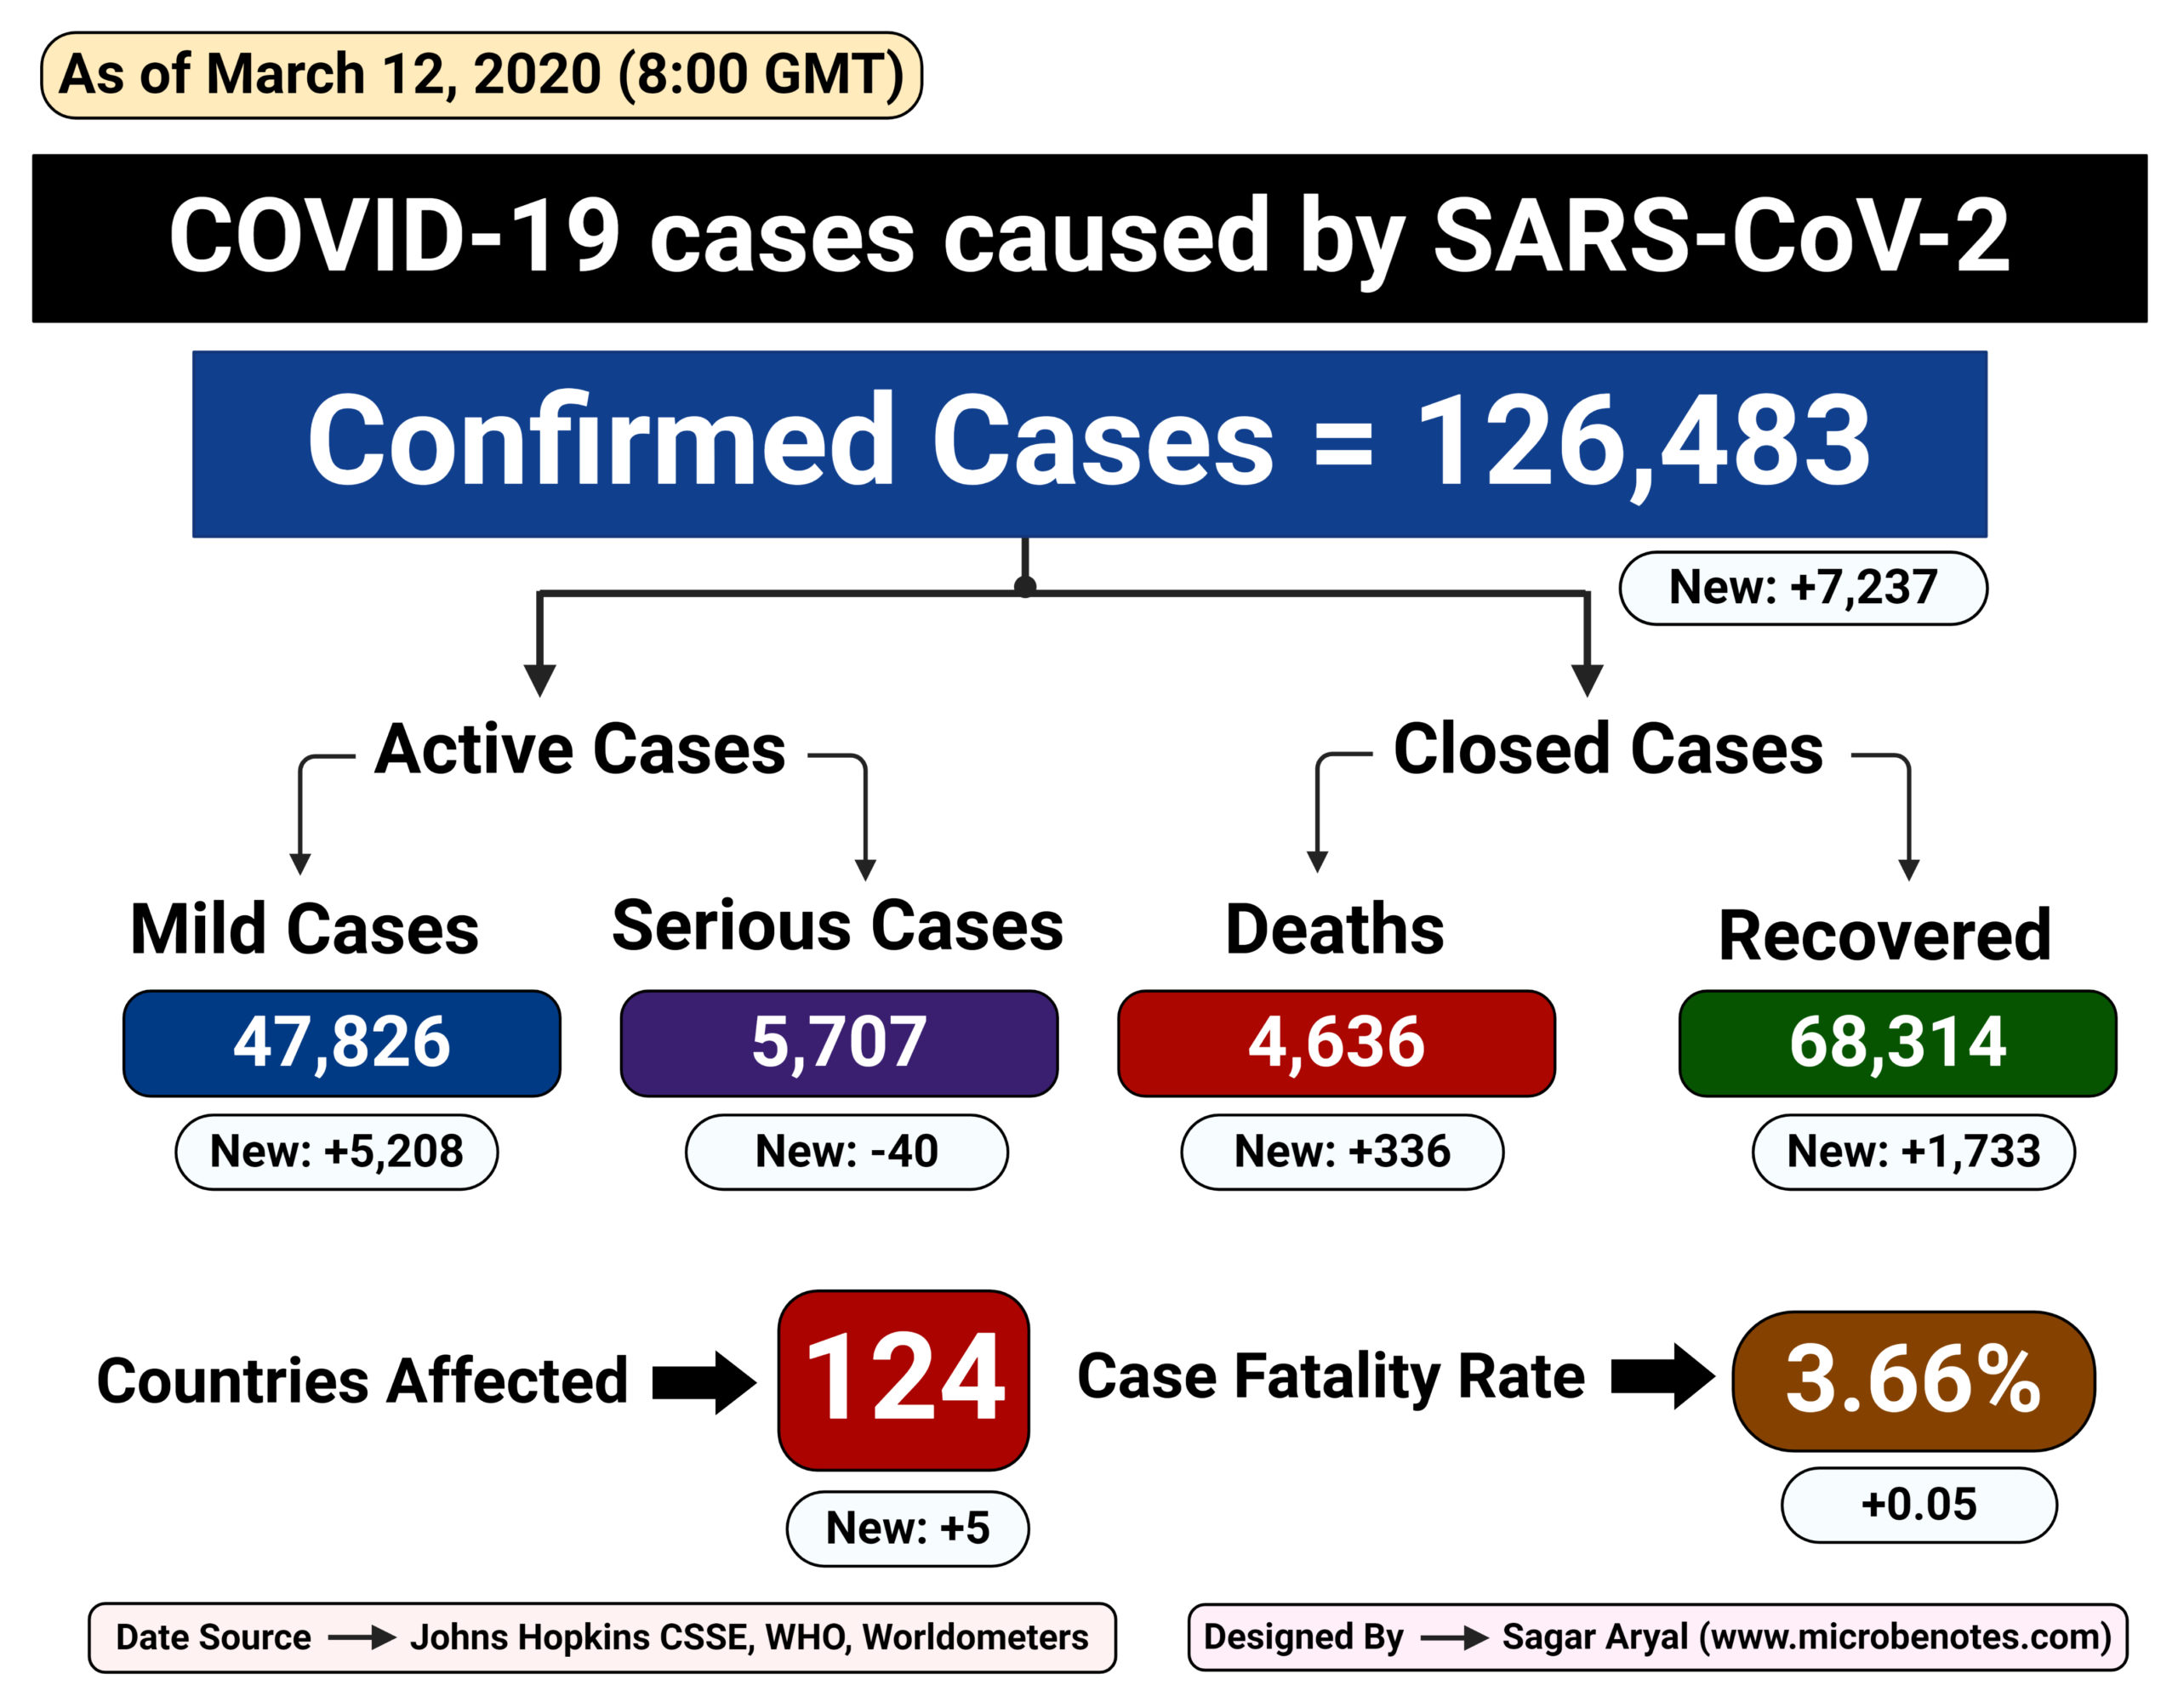 Epidemiology of COVID-19 caused by SARS-CoV-2 as of March 12, 2020